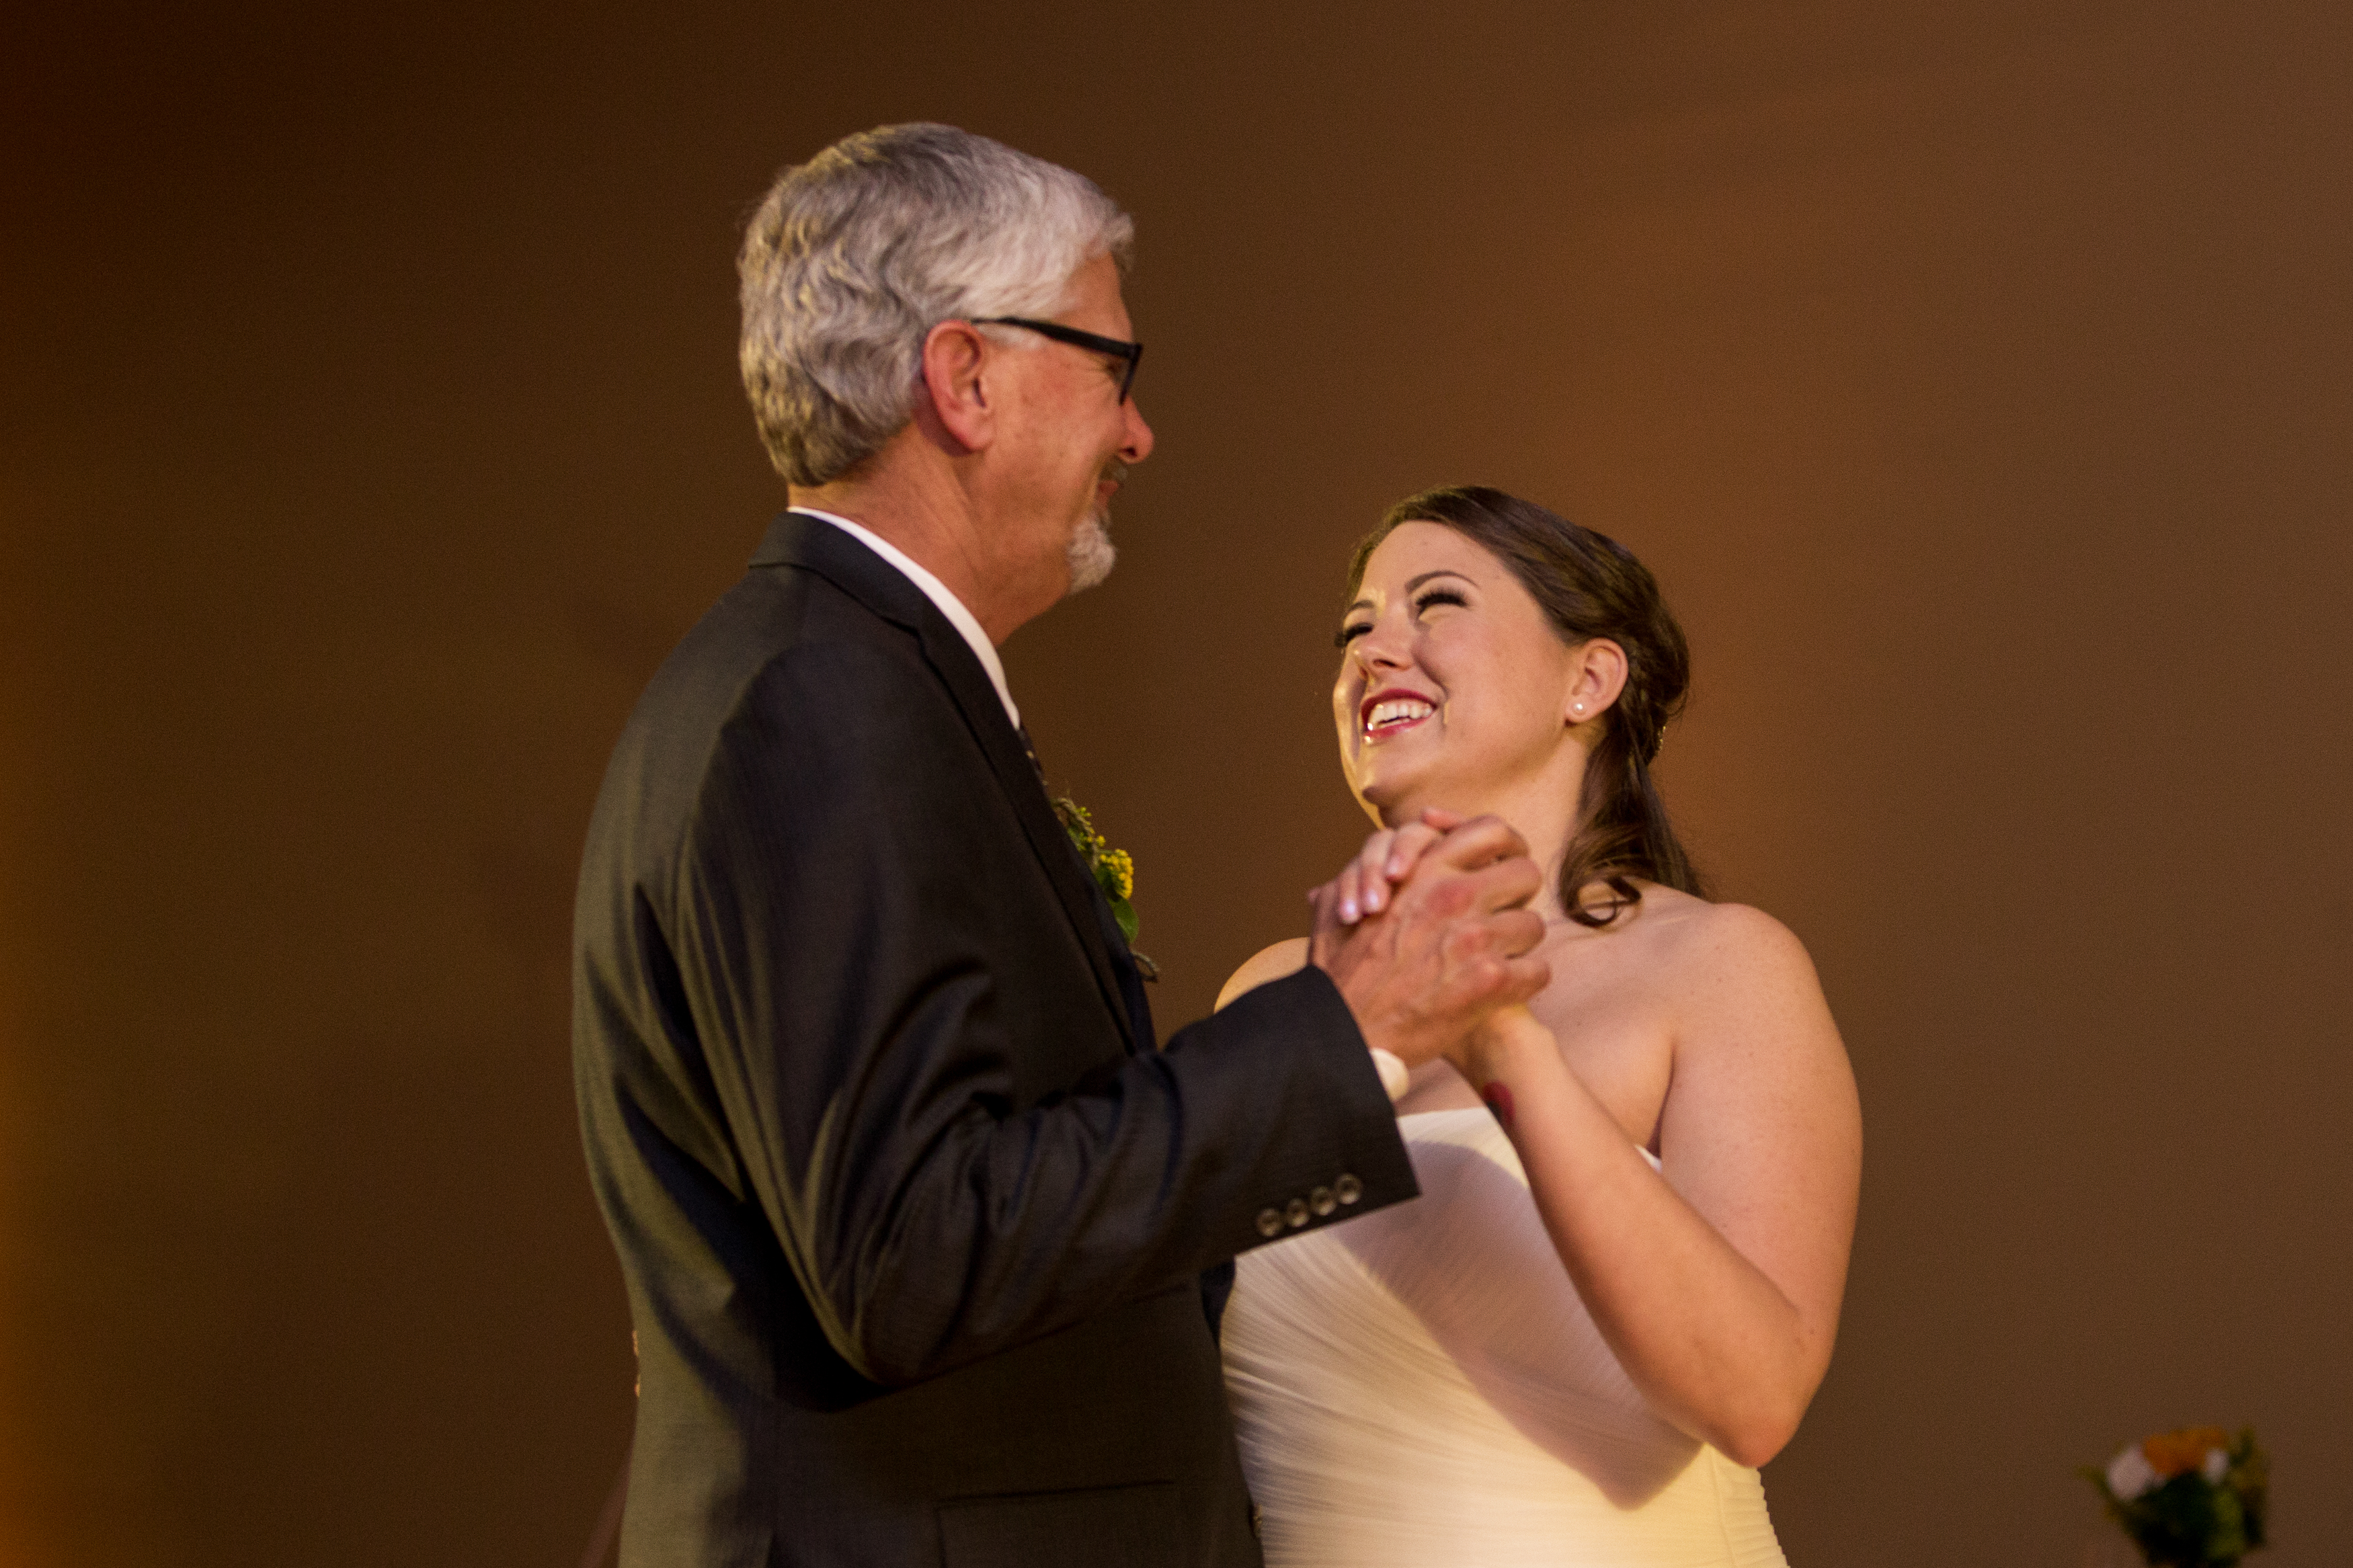 father-daughter dance at Muncie Indiana wedding